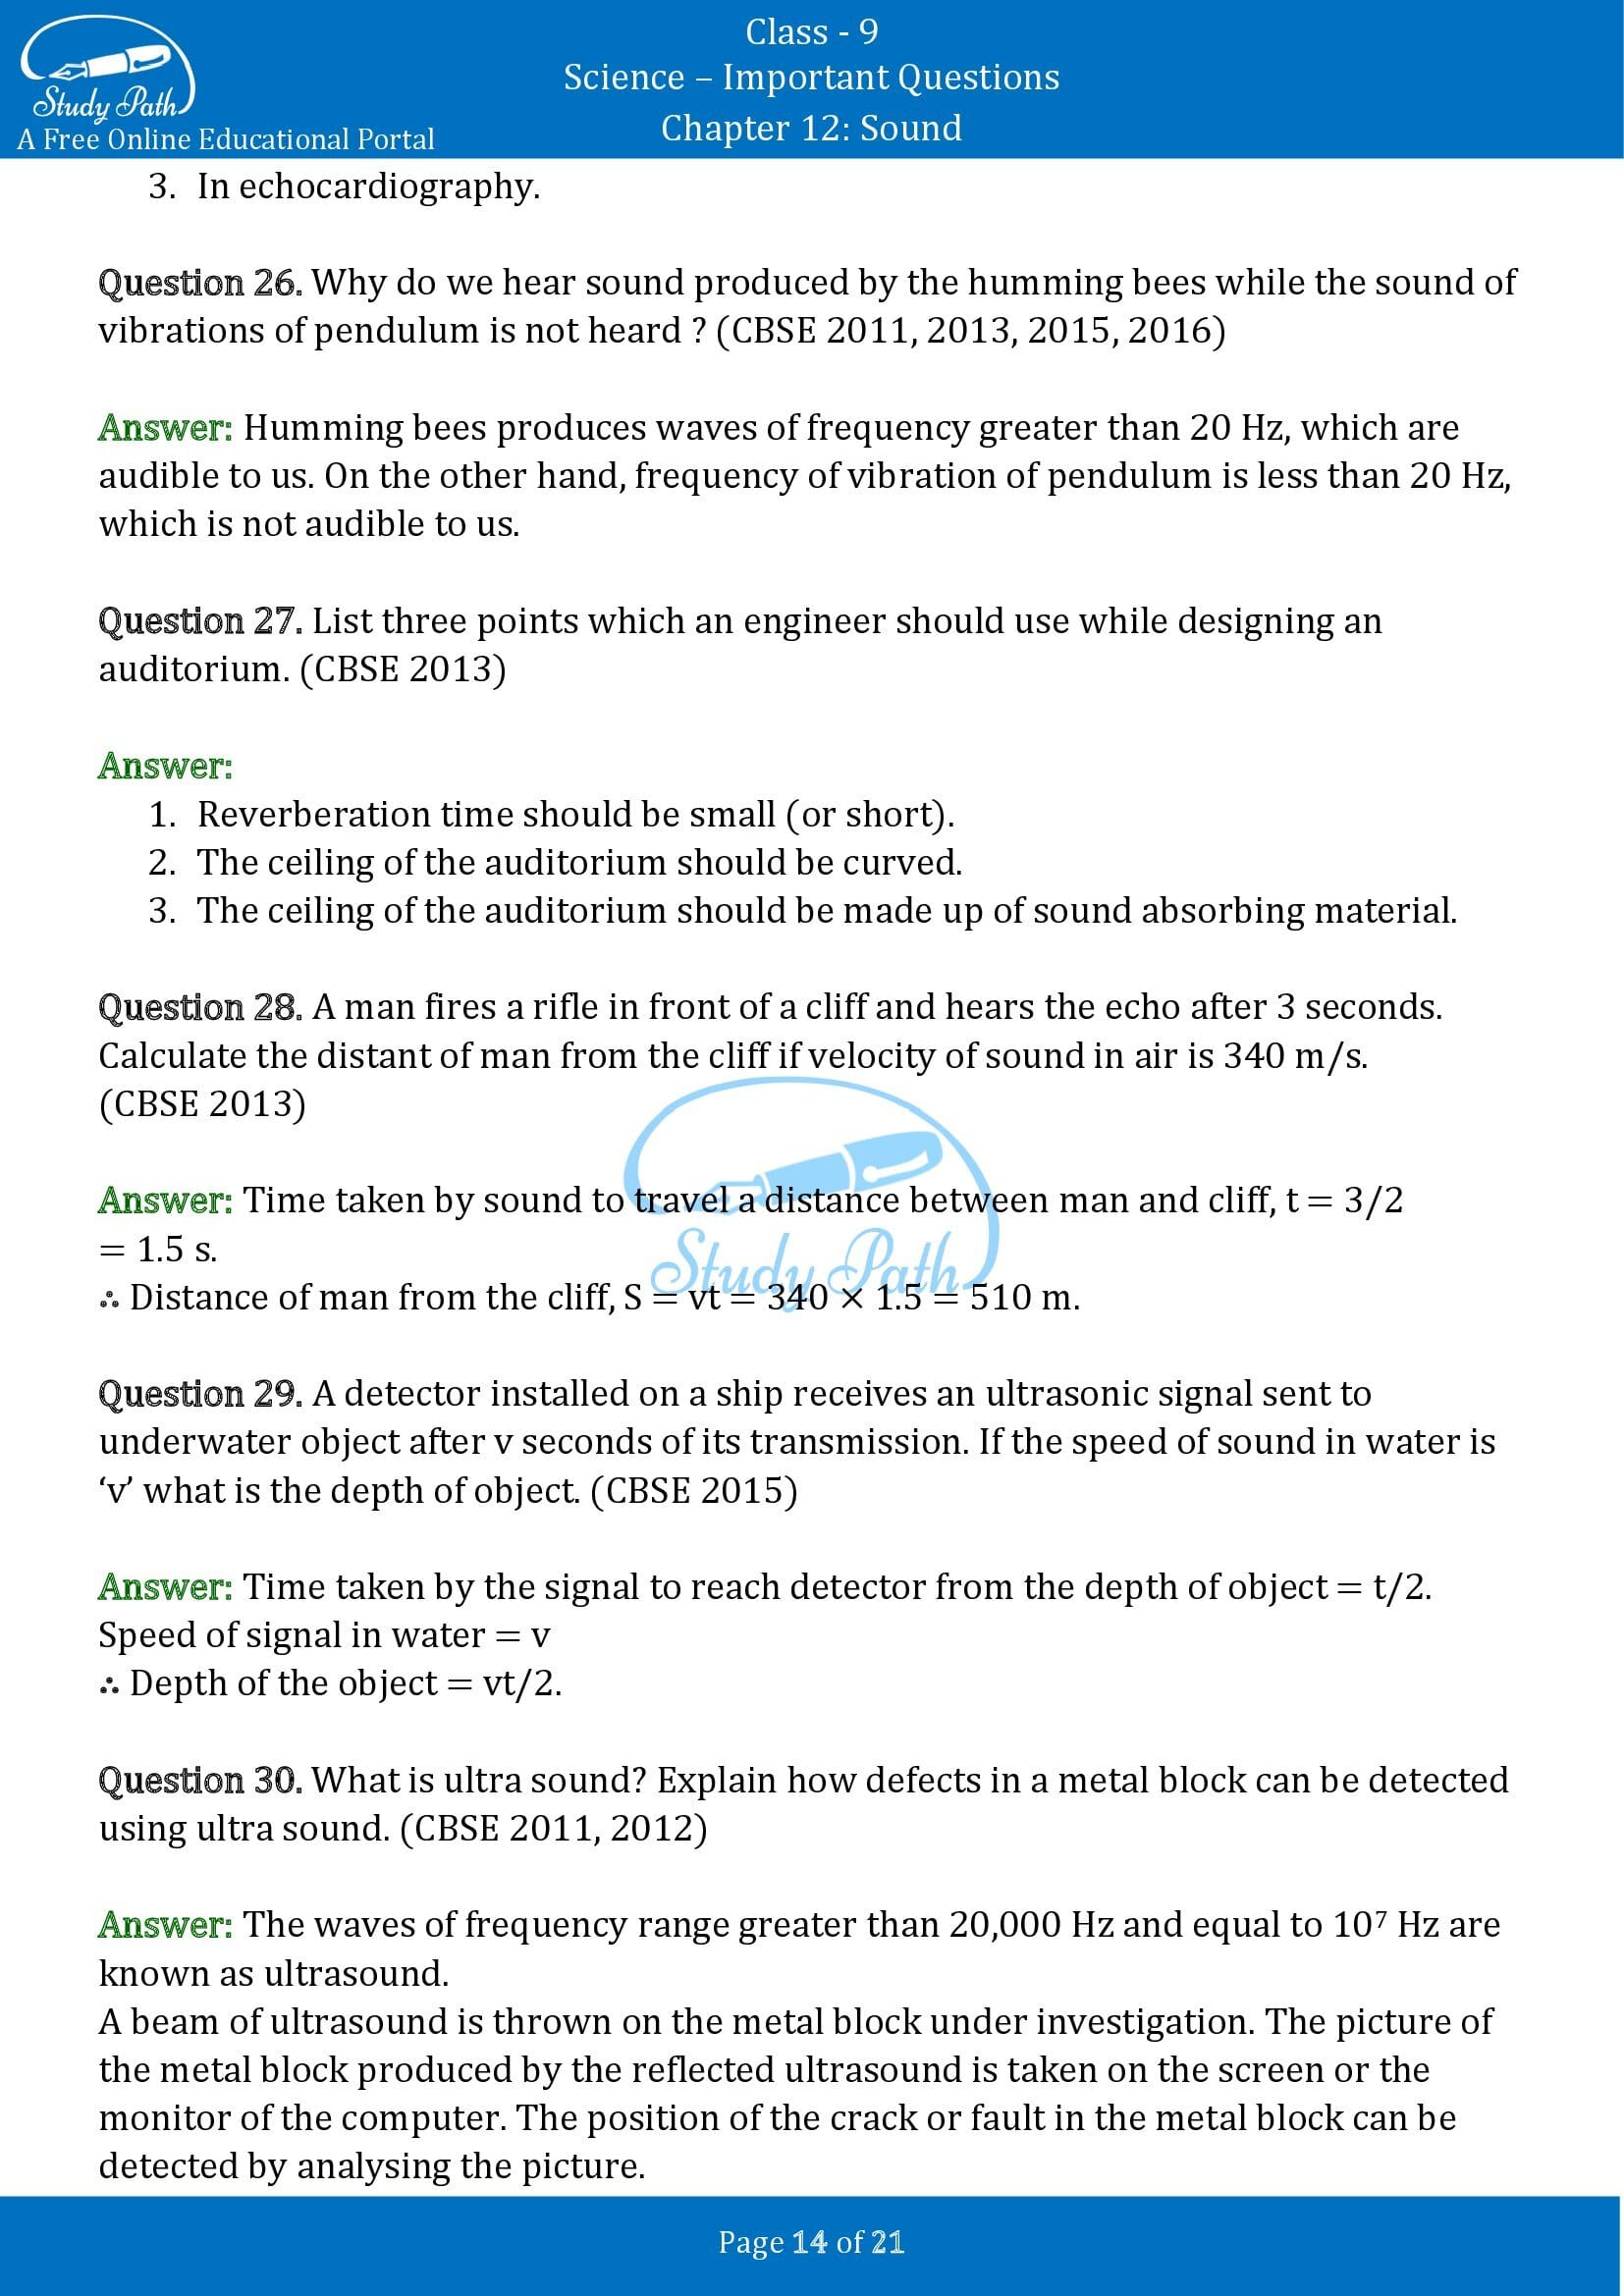 Important Questions for Class 9 Science Chapter 12 Sound 00014